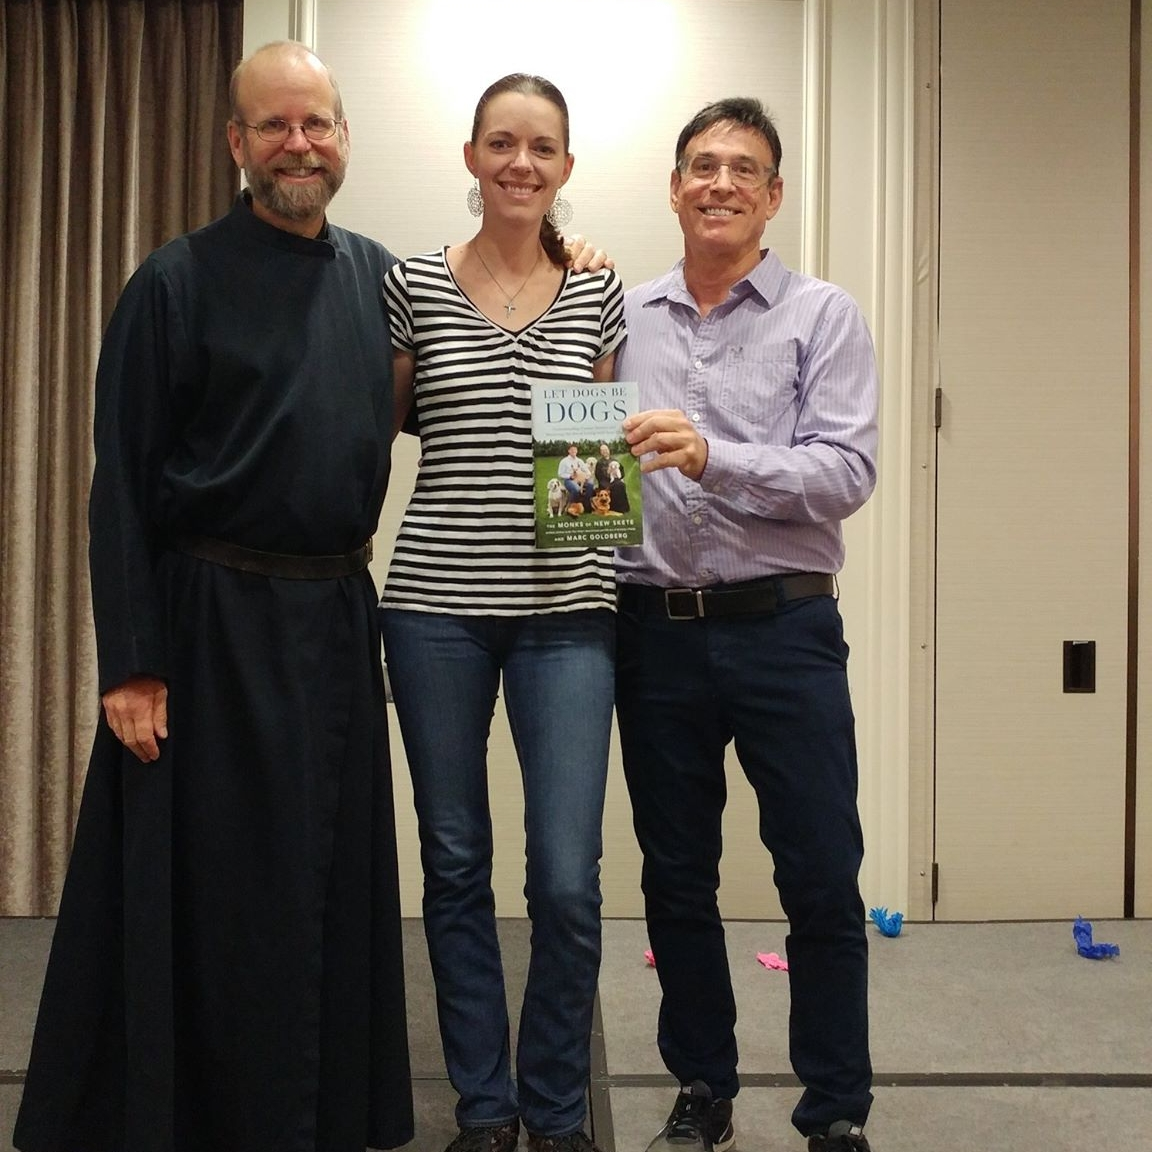 Crystal Blaker from Ruff House Dog Training & Behavior Modification meeting the Monks of New Skete at the 2017 IACP Conference in St. Louis.